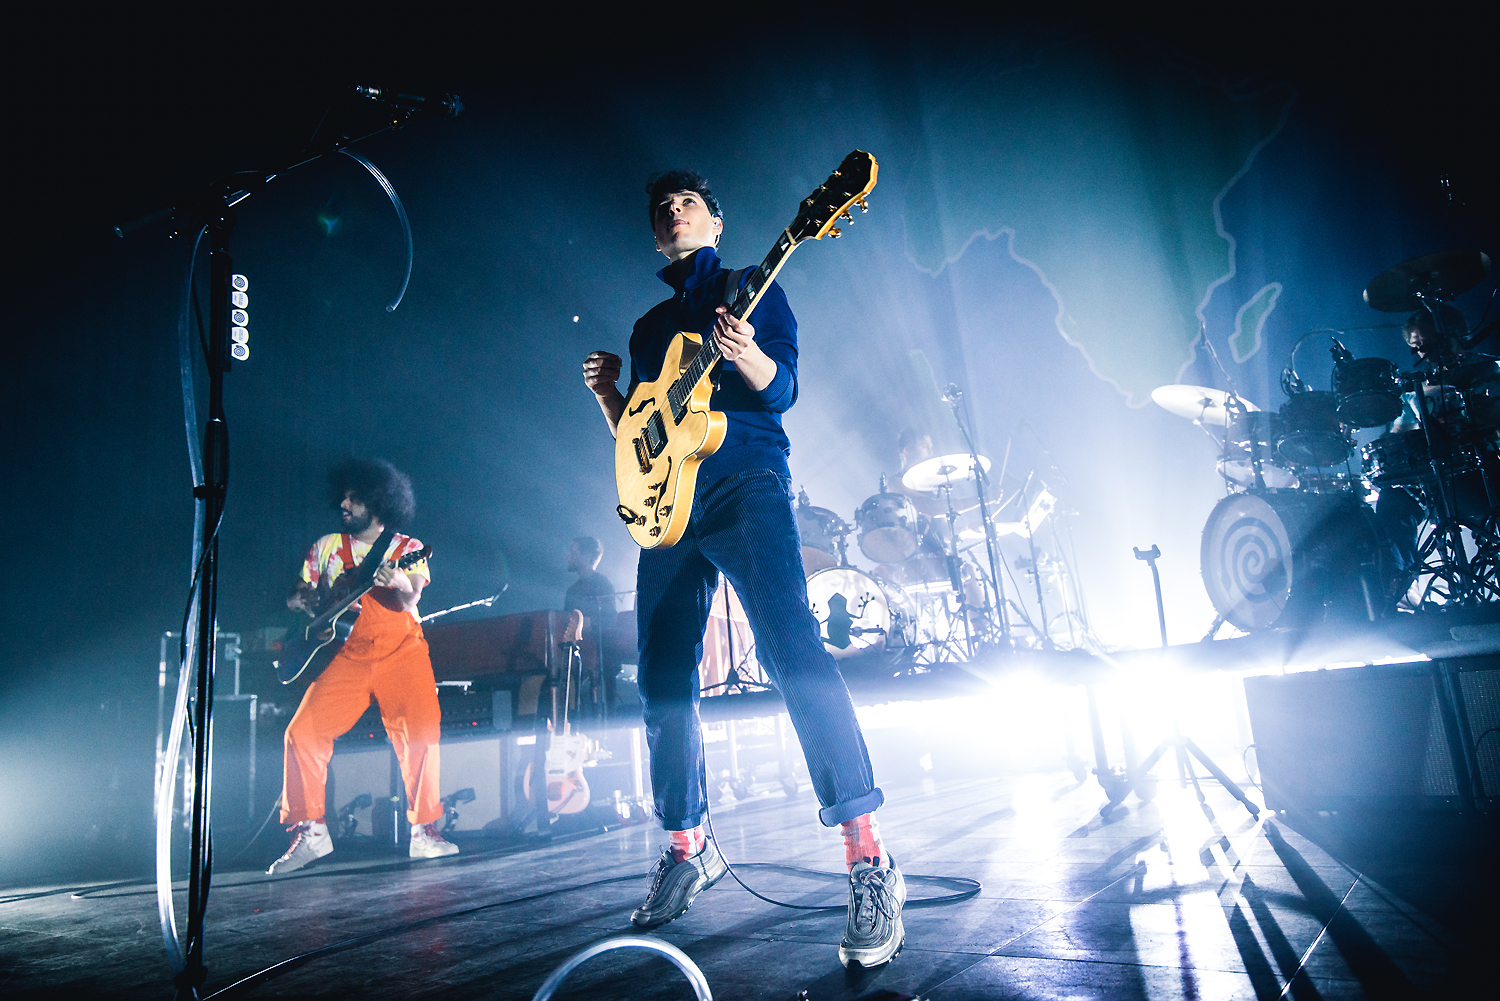 Vampire Weekend @ AB Brussel 2019 (Jan Van den Bulck)